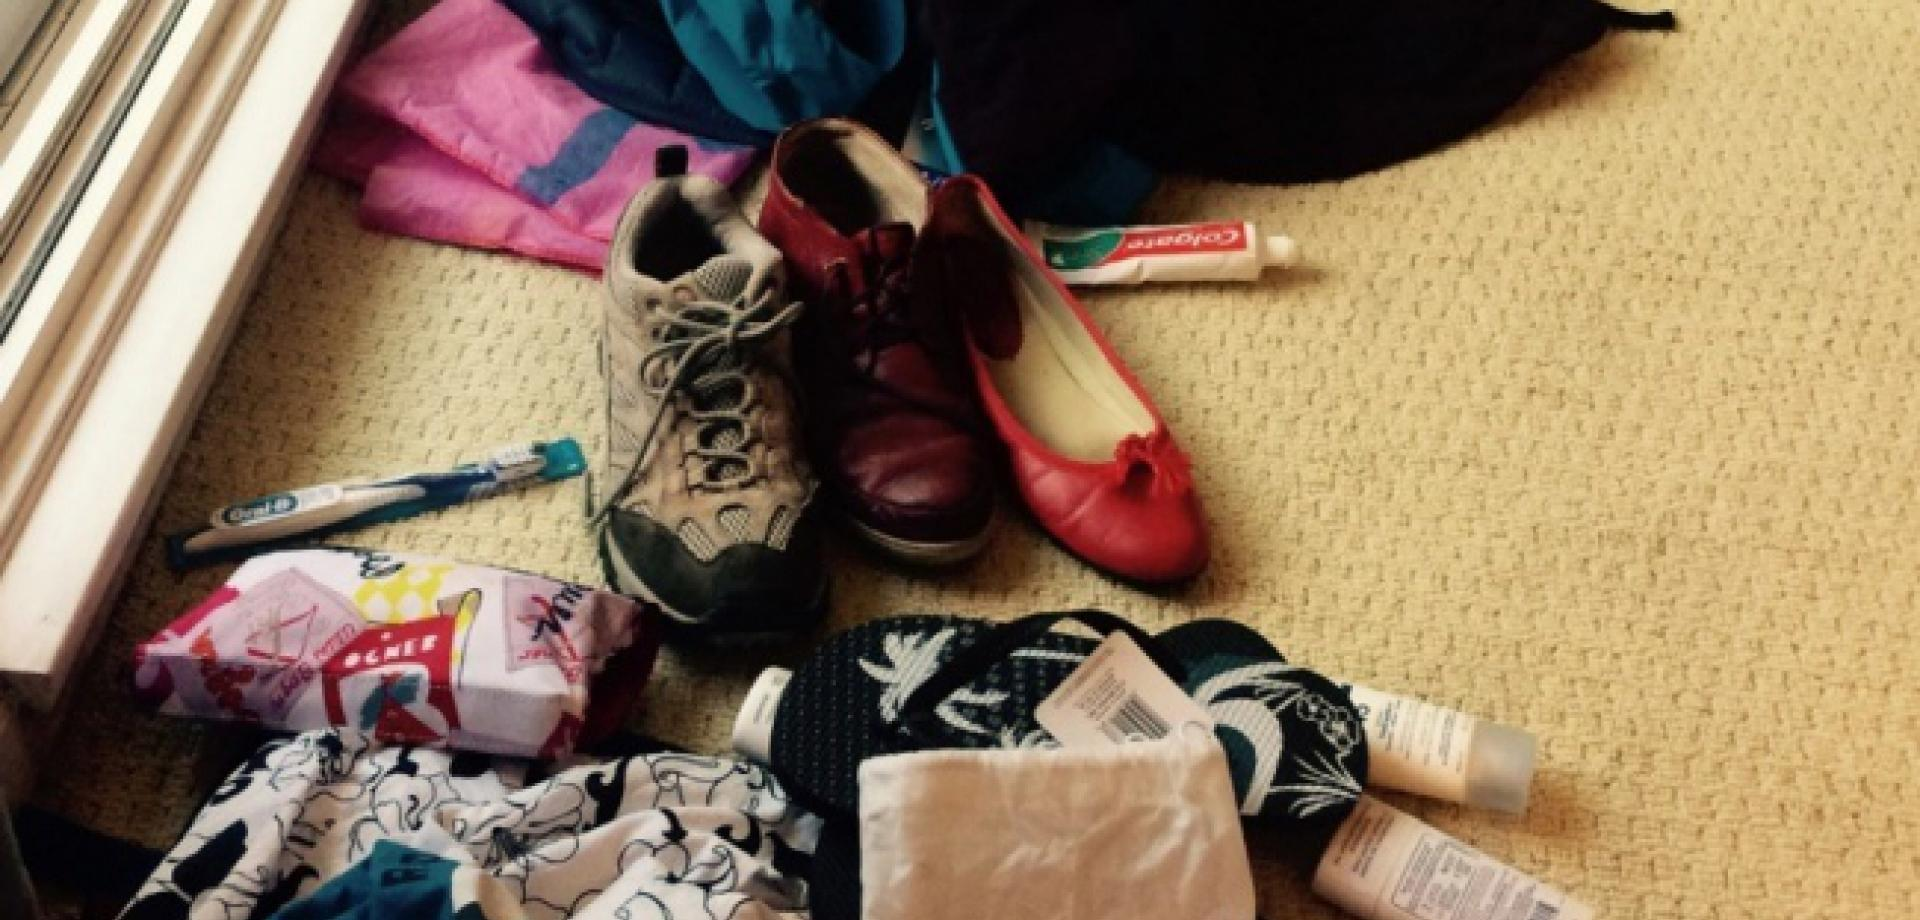 Hilary's packing scattered on the floor